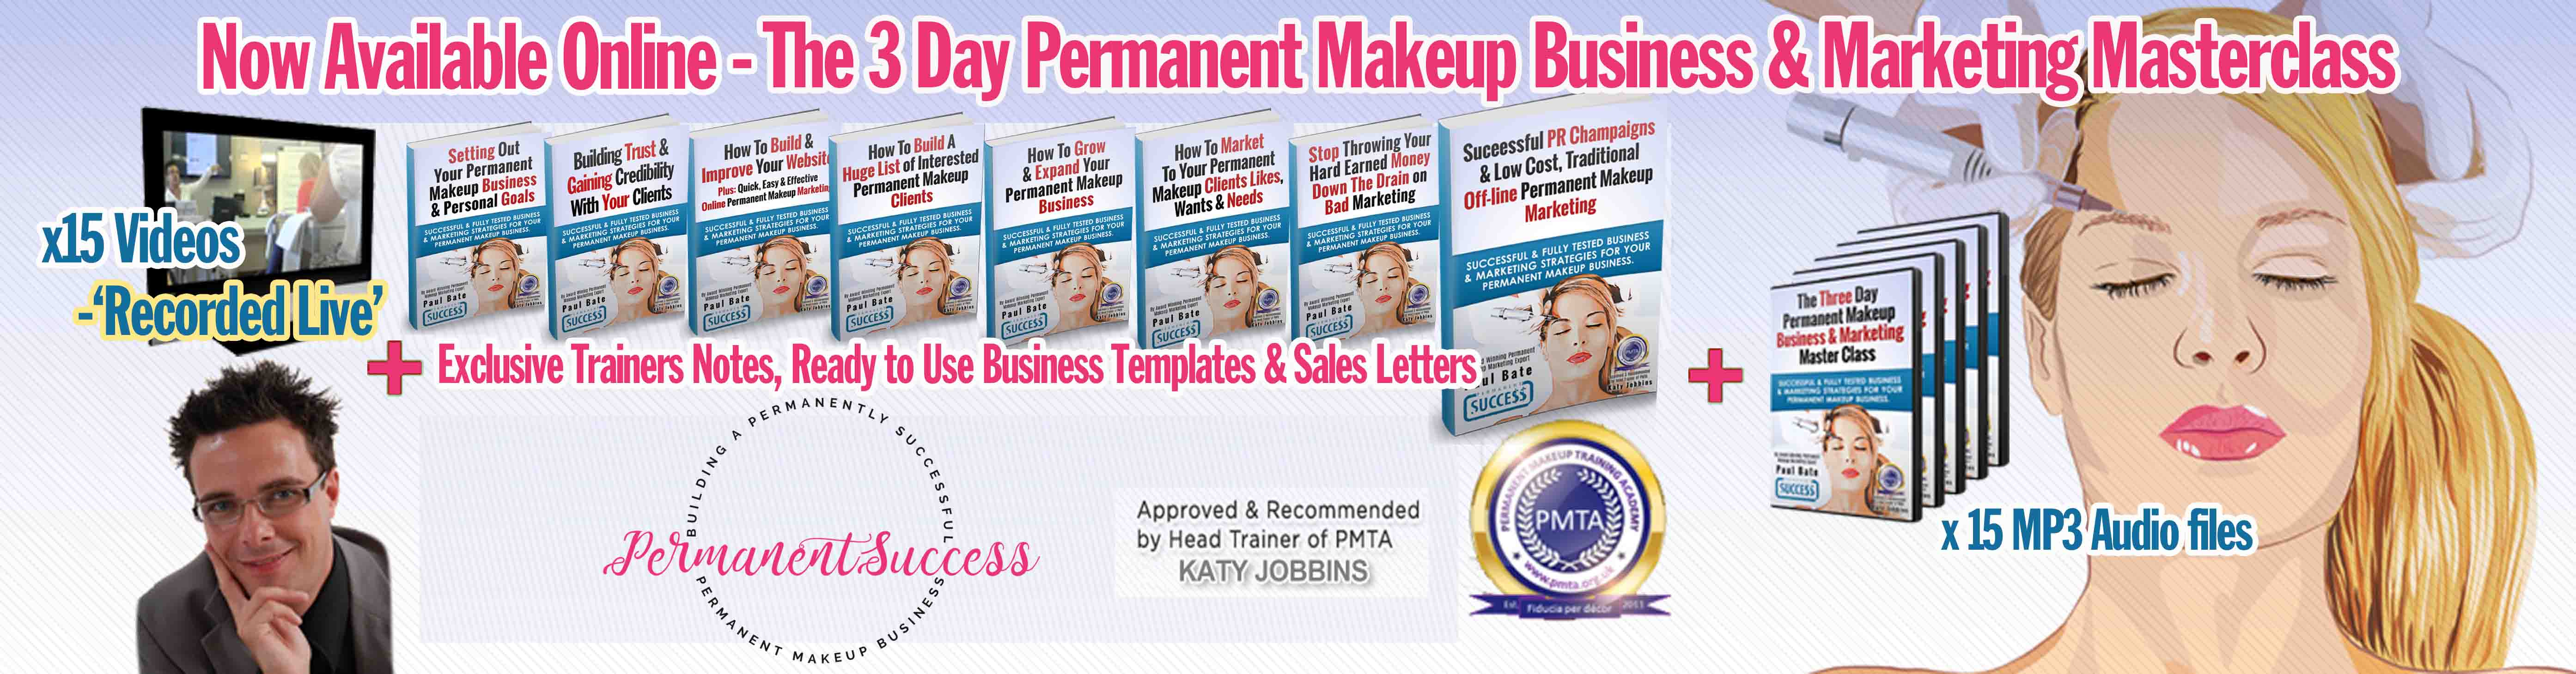 Online-3-Day-Permanent-Makeup-Business-And-Marketing-Master-Class-Banner_pink2